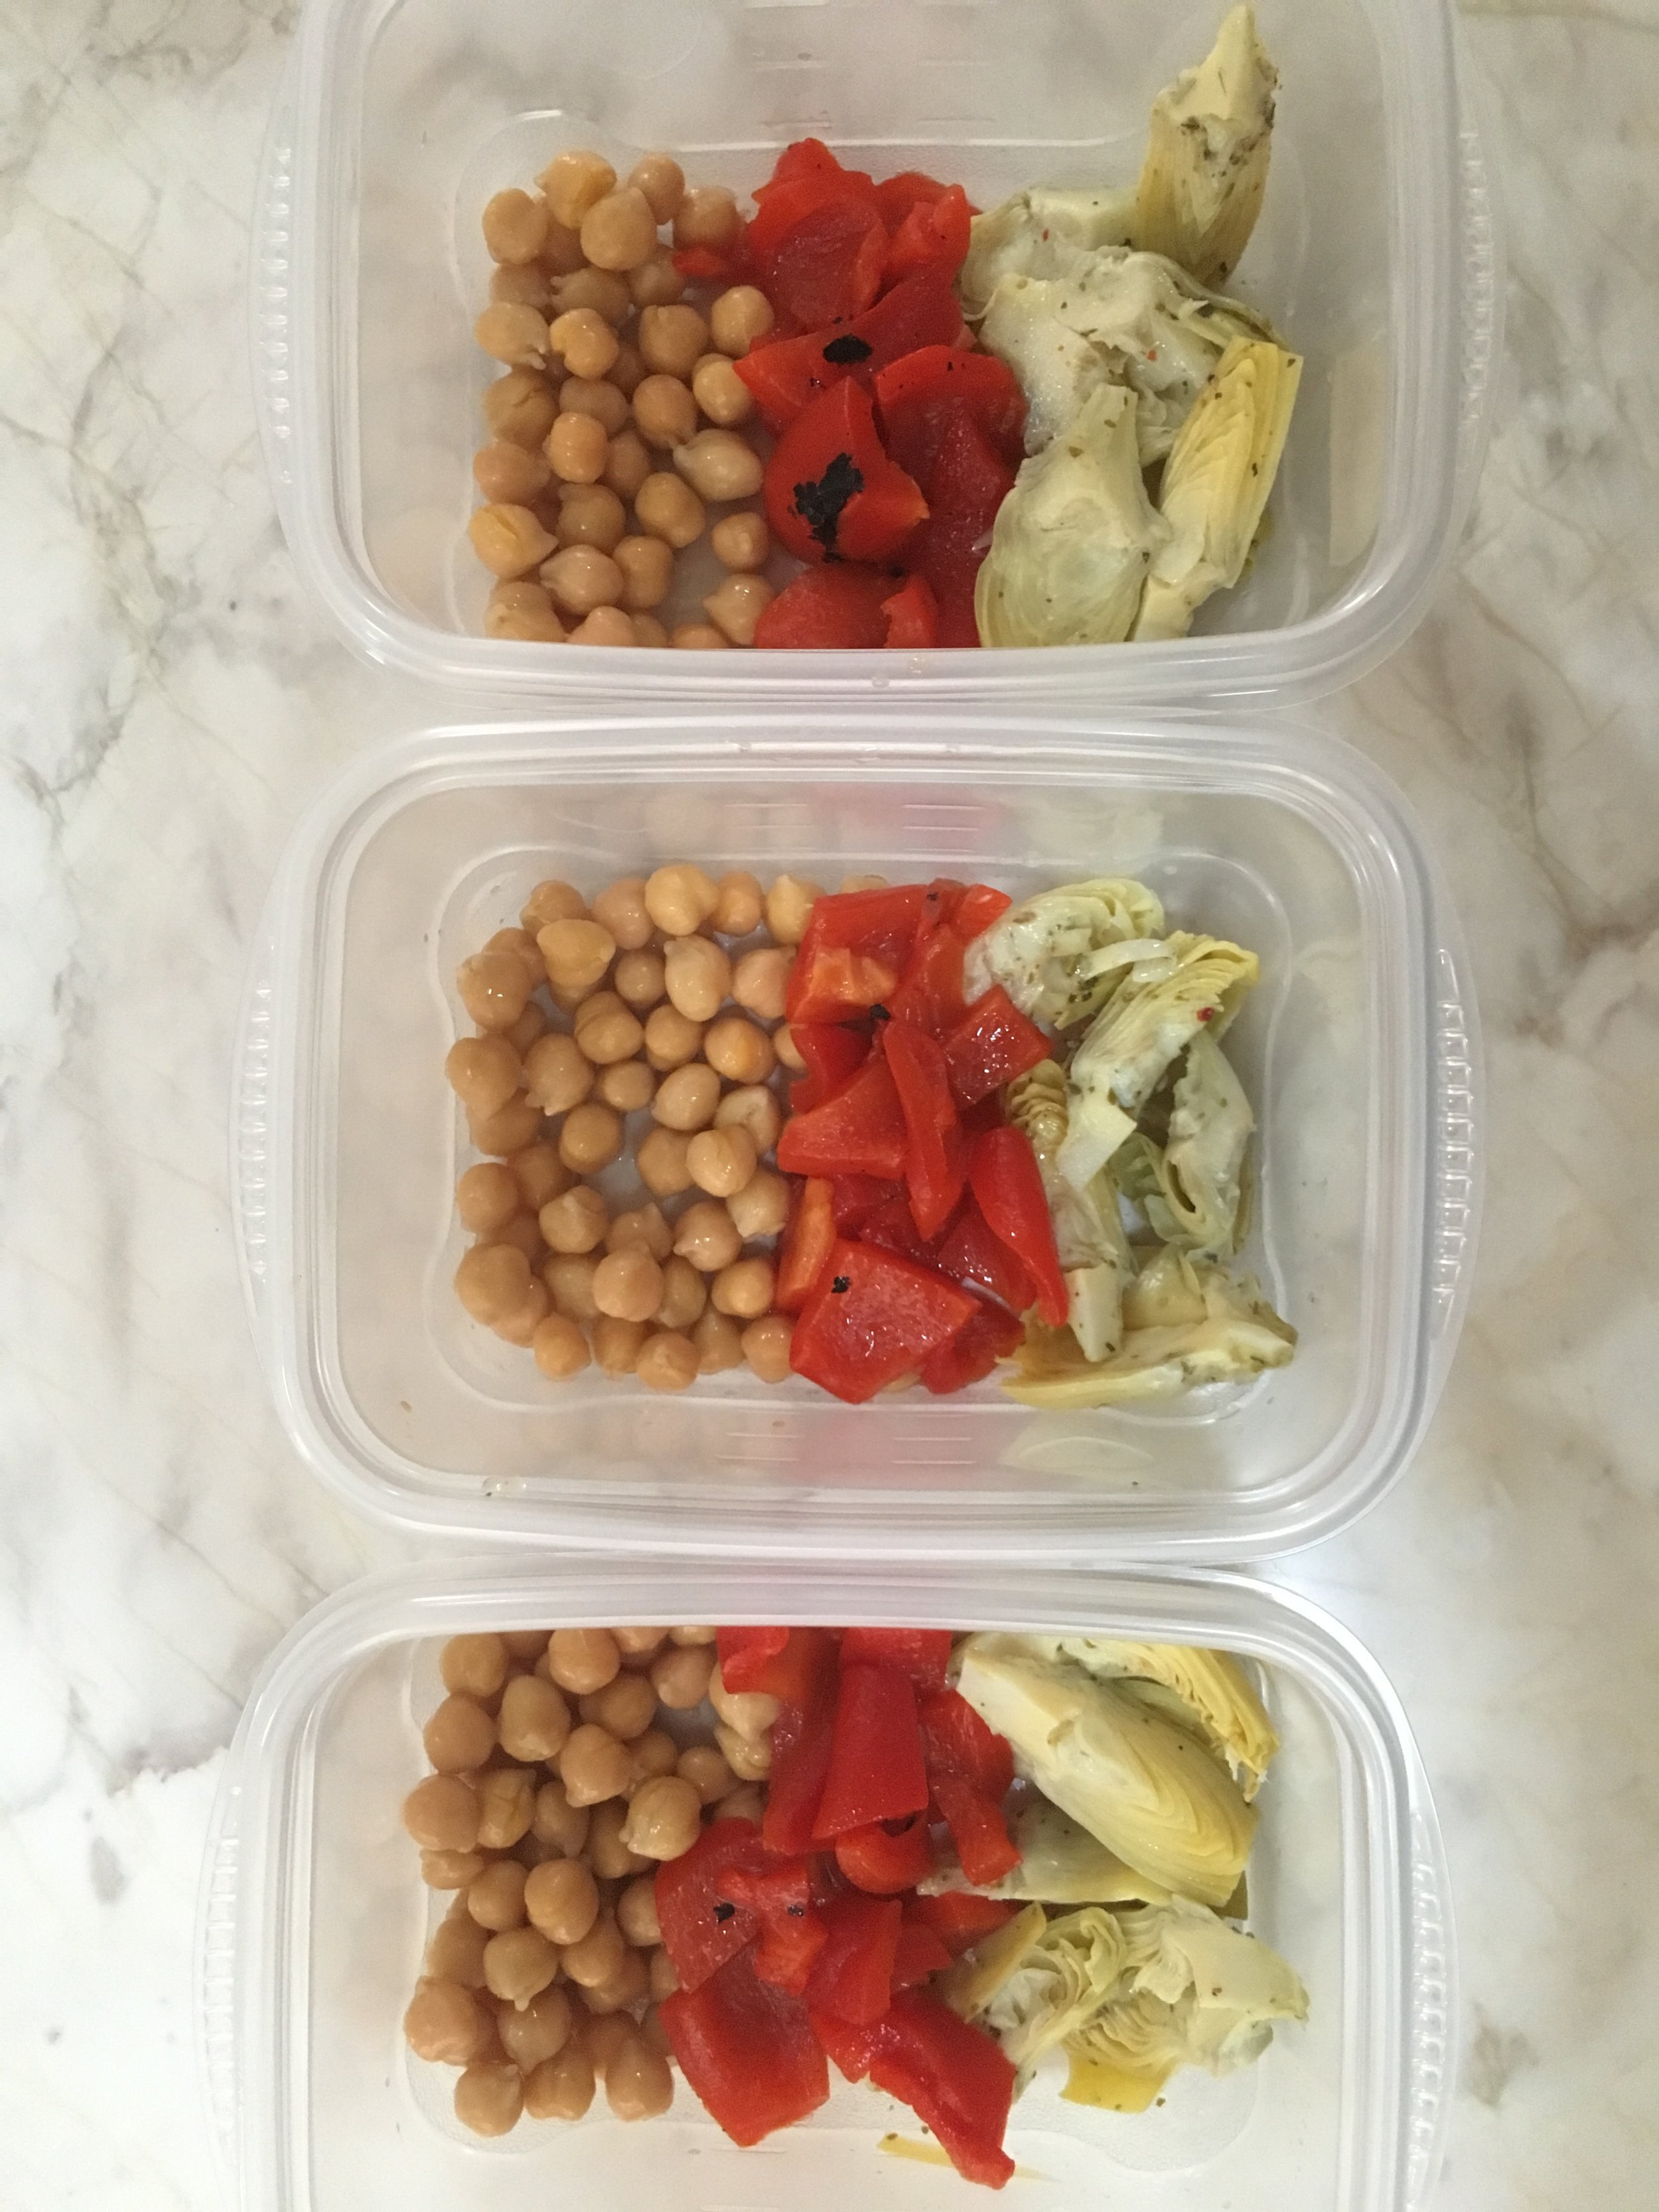 My Antipasti Layer for 3 extra meals